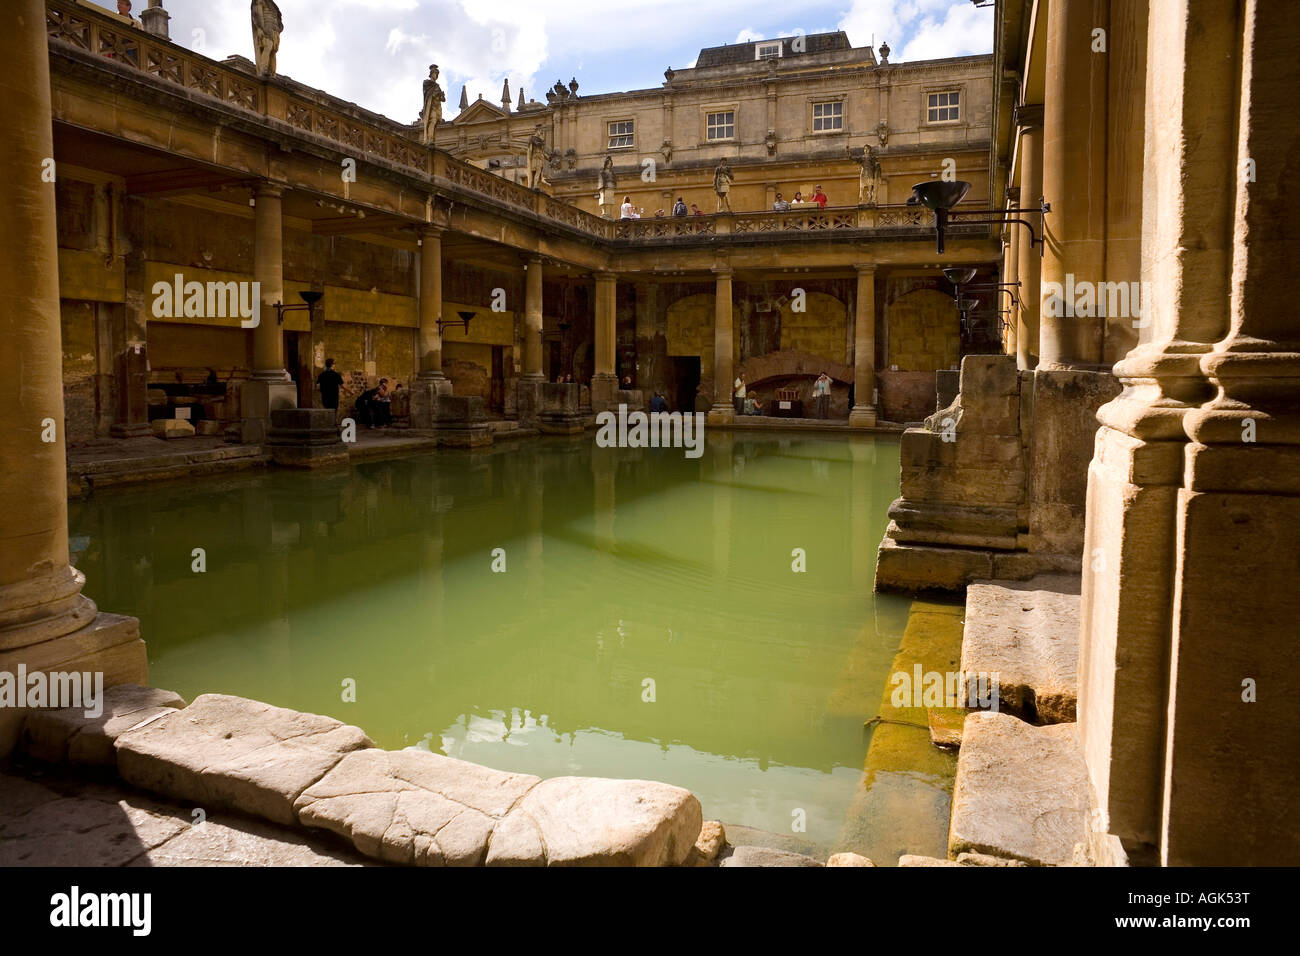 The Great Bath at the ancient site of The Roman Baths In Bath England - Stock Image